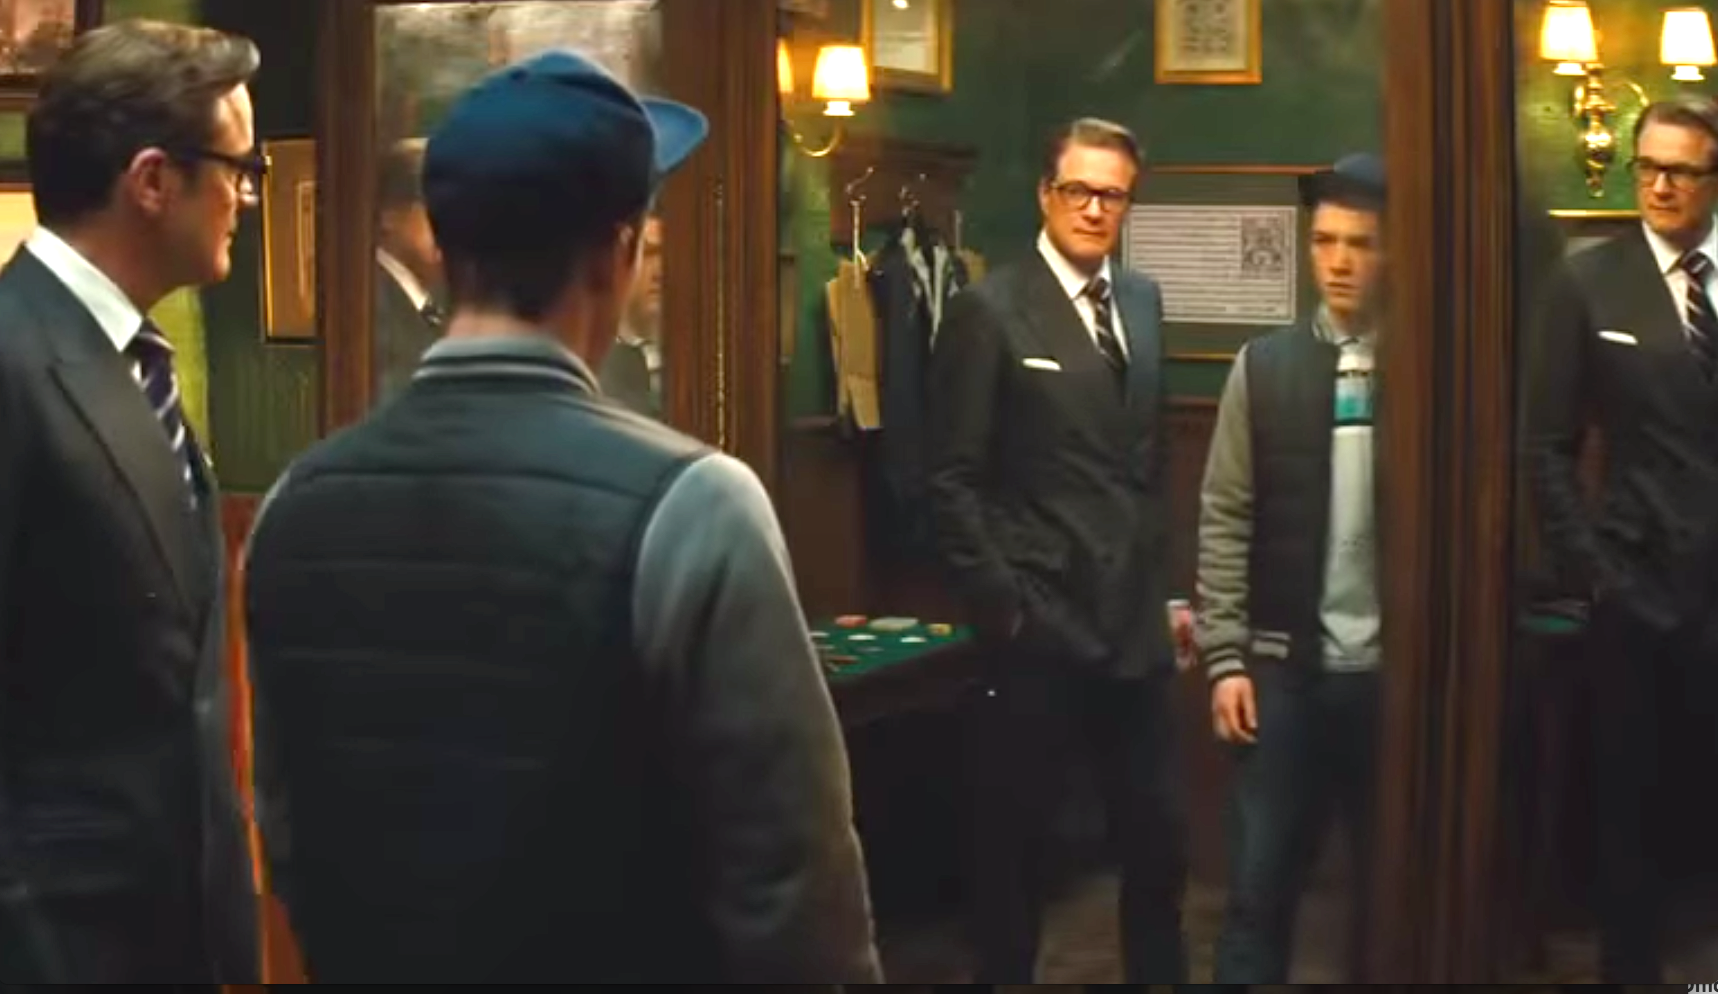 Kingsman The Secret Service Interview Taron Egerton: THE SECRET SERVICE (2014): Now I'll Definitely